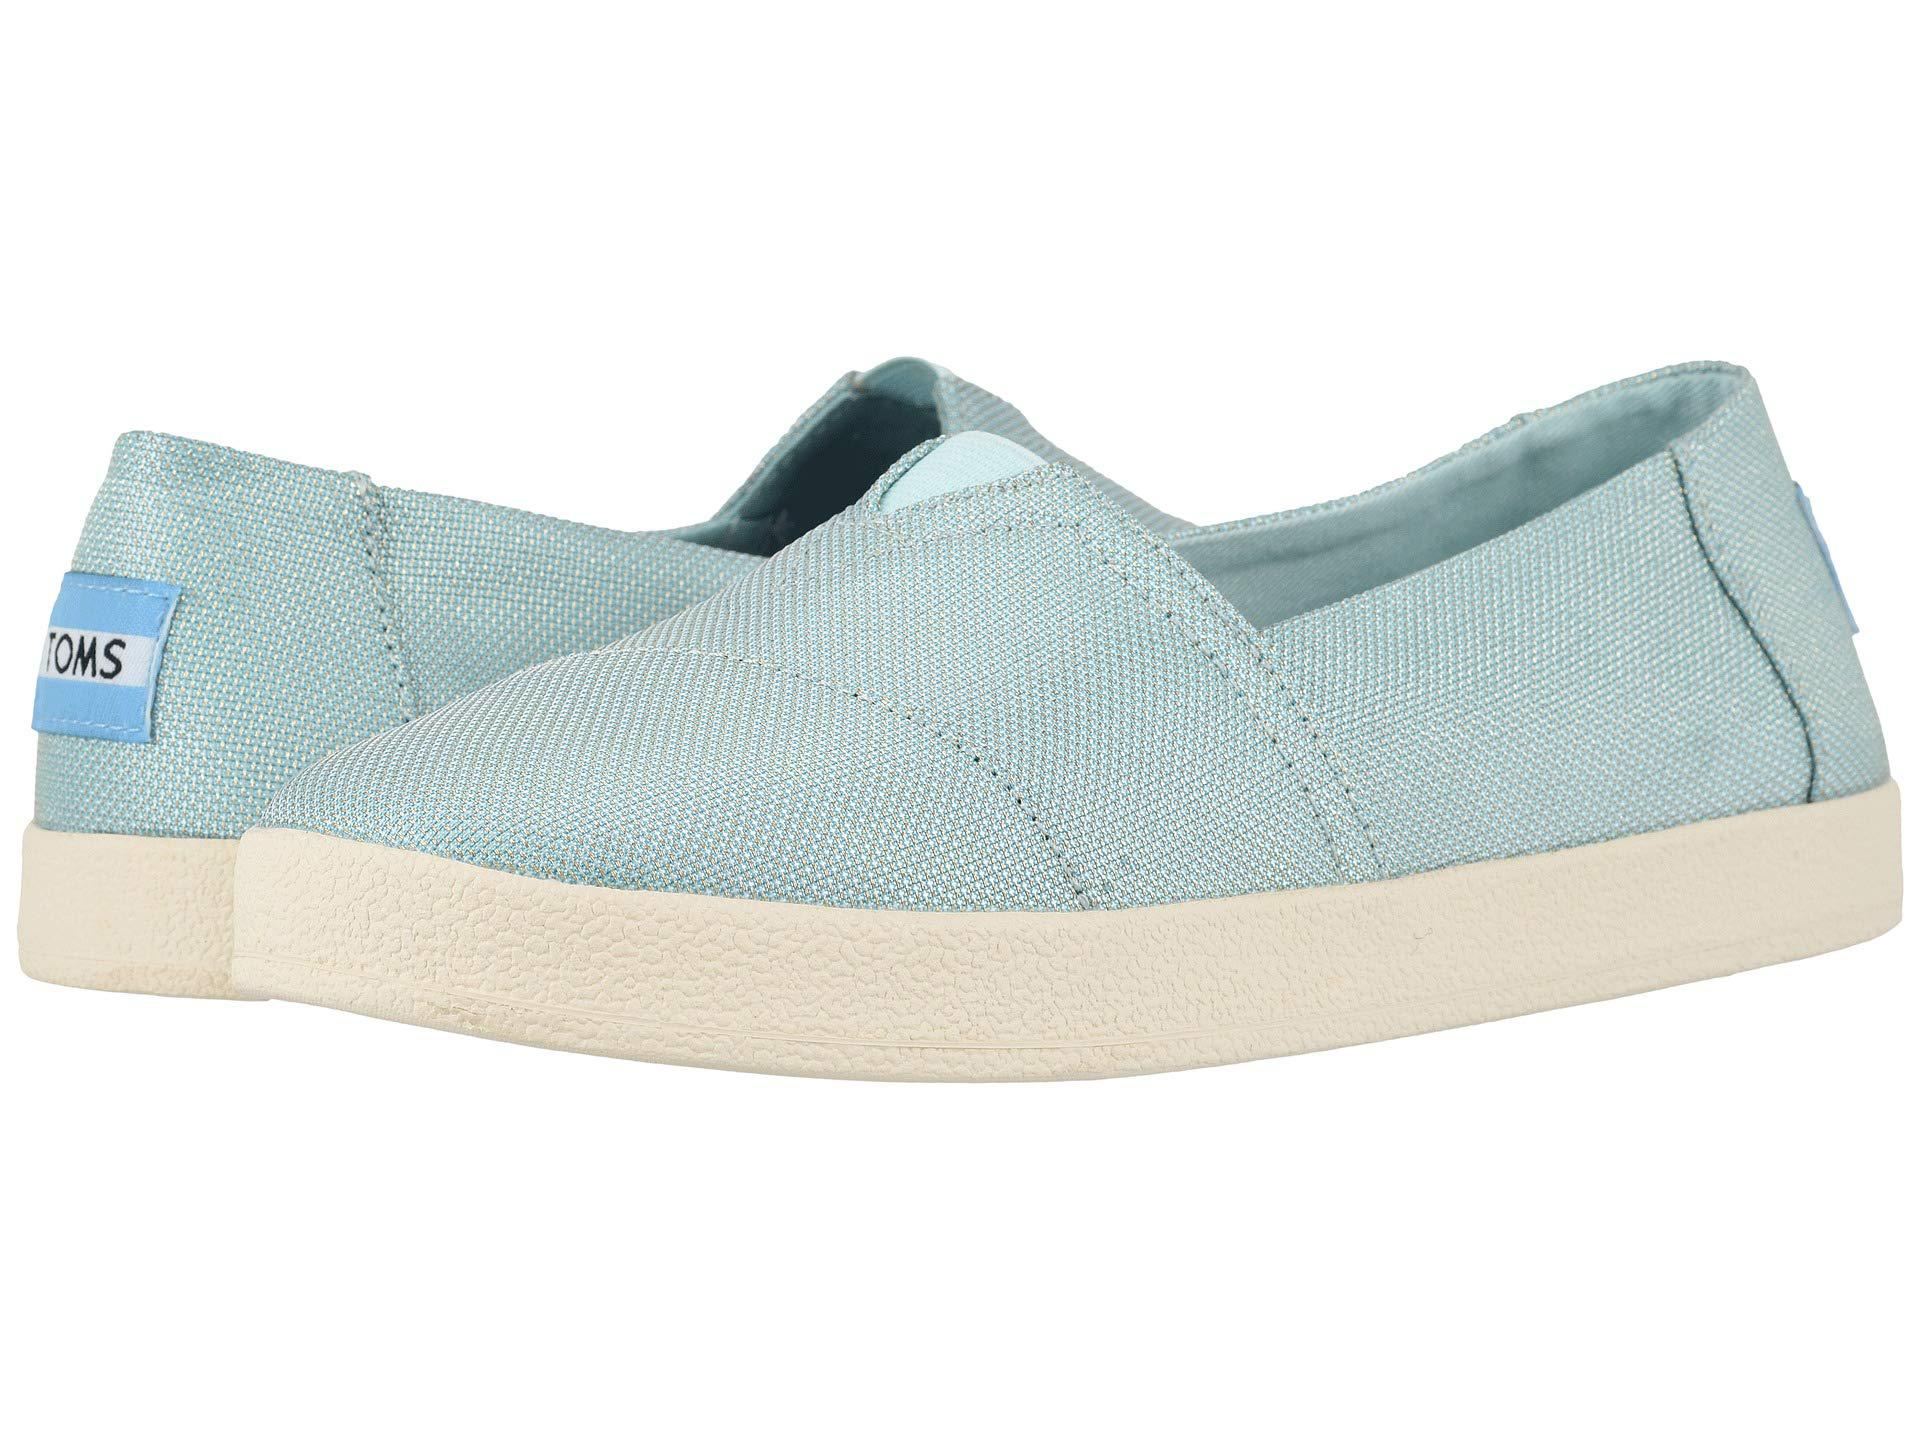 c7e8a91f58d TOMS - Blue Avalon (bloom Slubby Cotton) Women s Shoes - Lyst. View  fullscreen